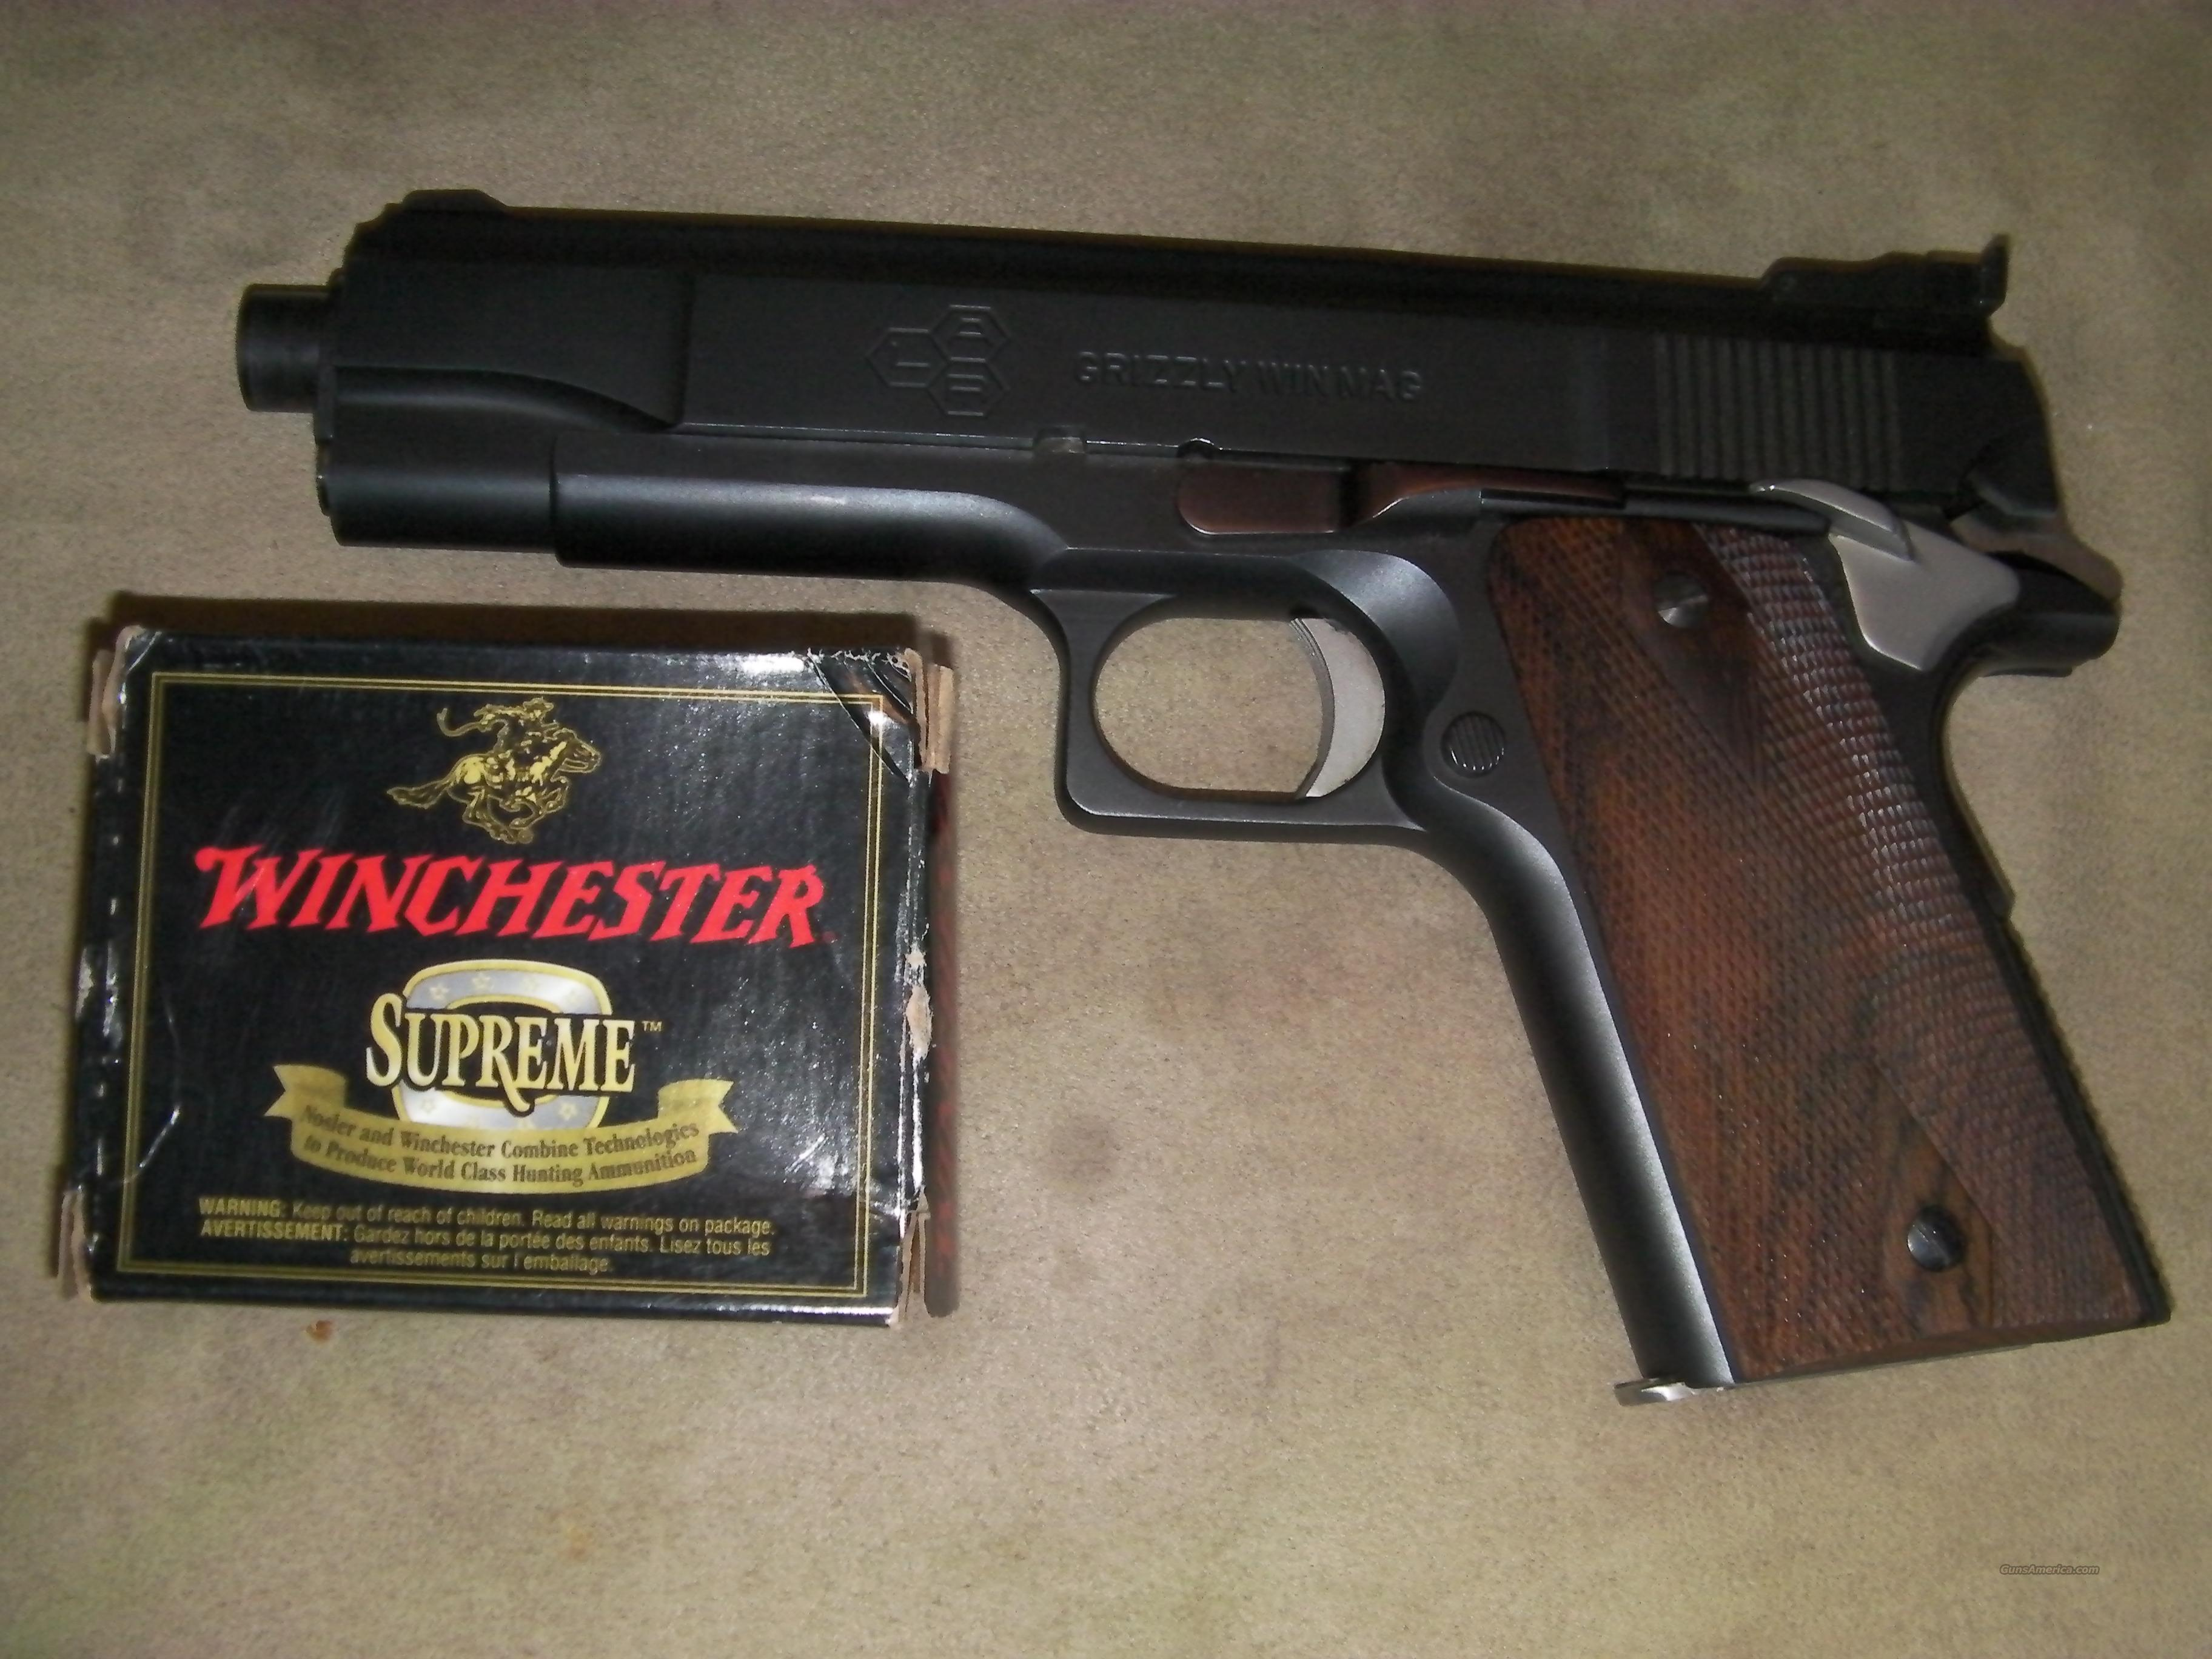 LAR Grizzly 45 win mag  Guns > Pistols > LAR/Grizzly Mfg. Co. Pistols